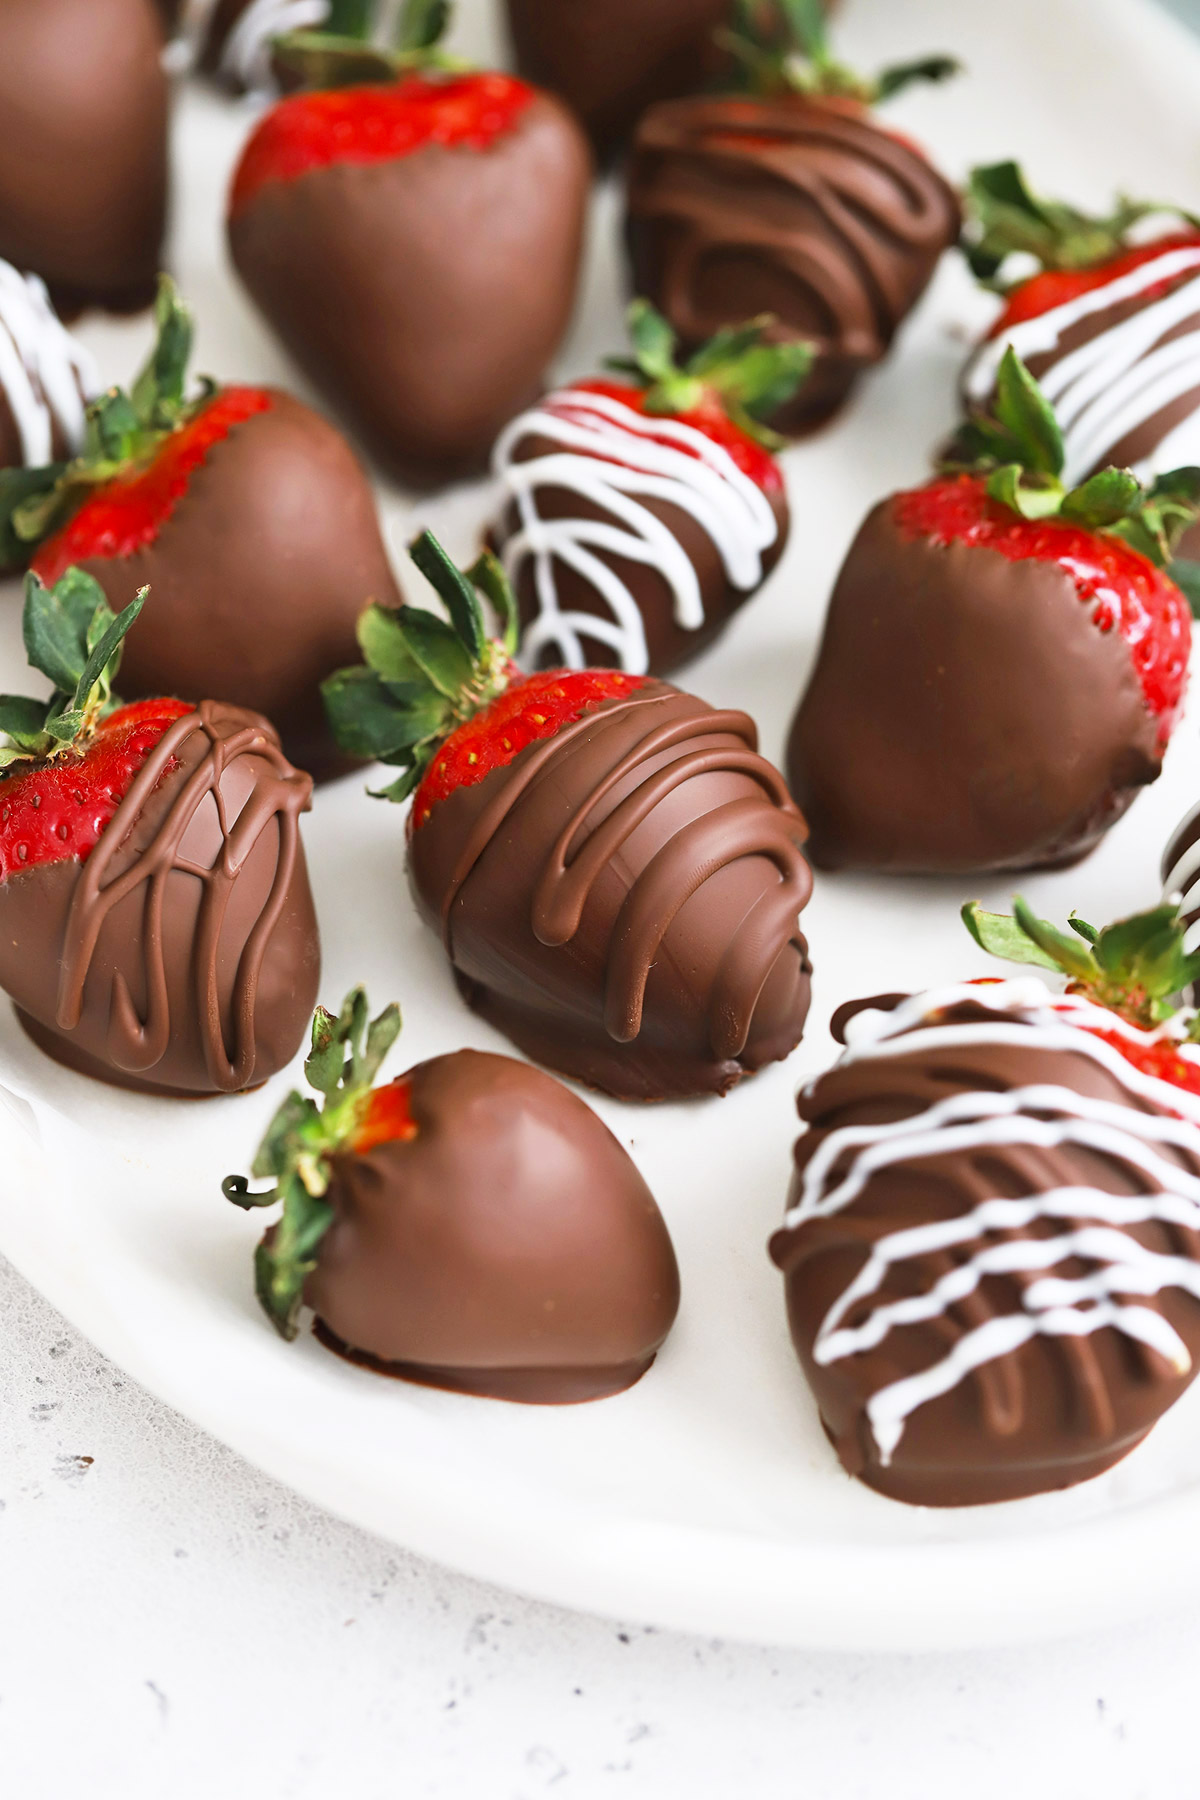 Close up Front view of vegan chocolate-covered strawberries on a white oval plate